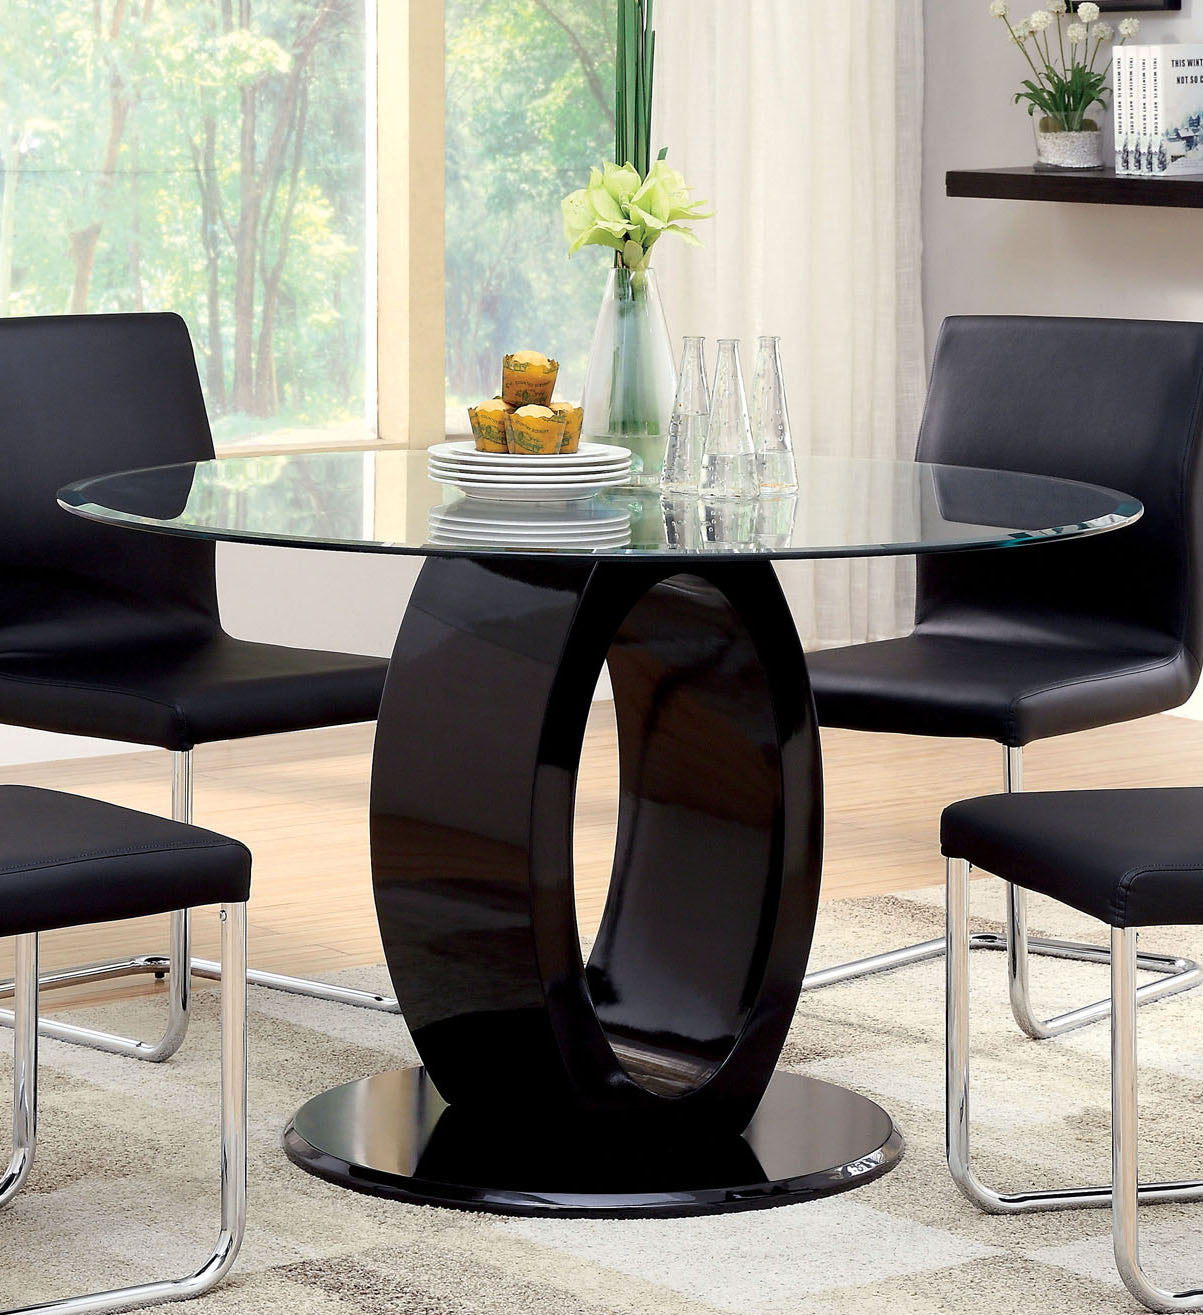 Furniture of America Lodia I Contemporary Black Glass Top Round Dining Table